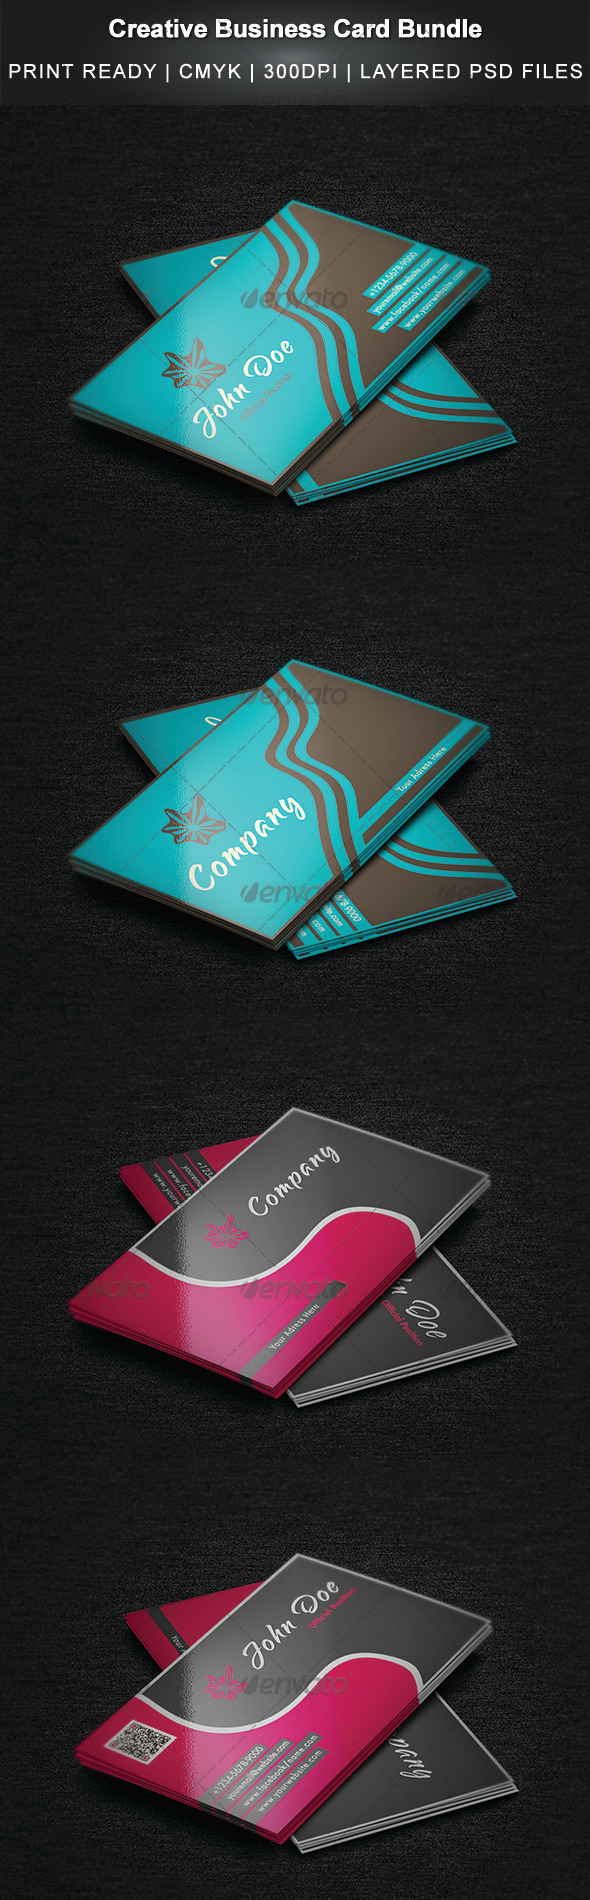 GraphicRiver Creative Business Card Bundle 3408225